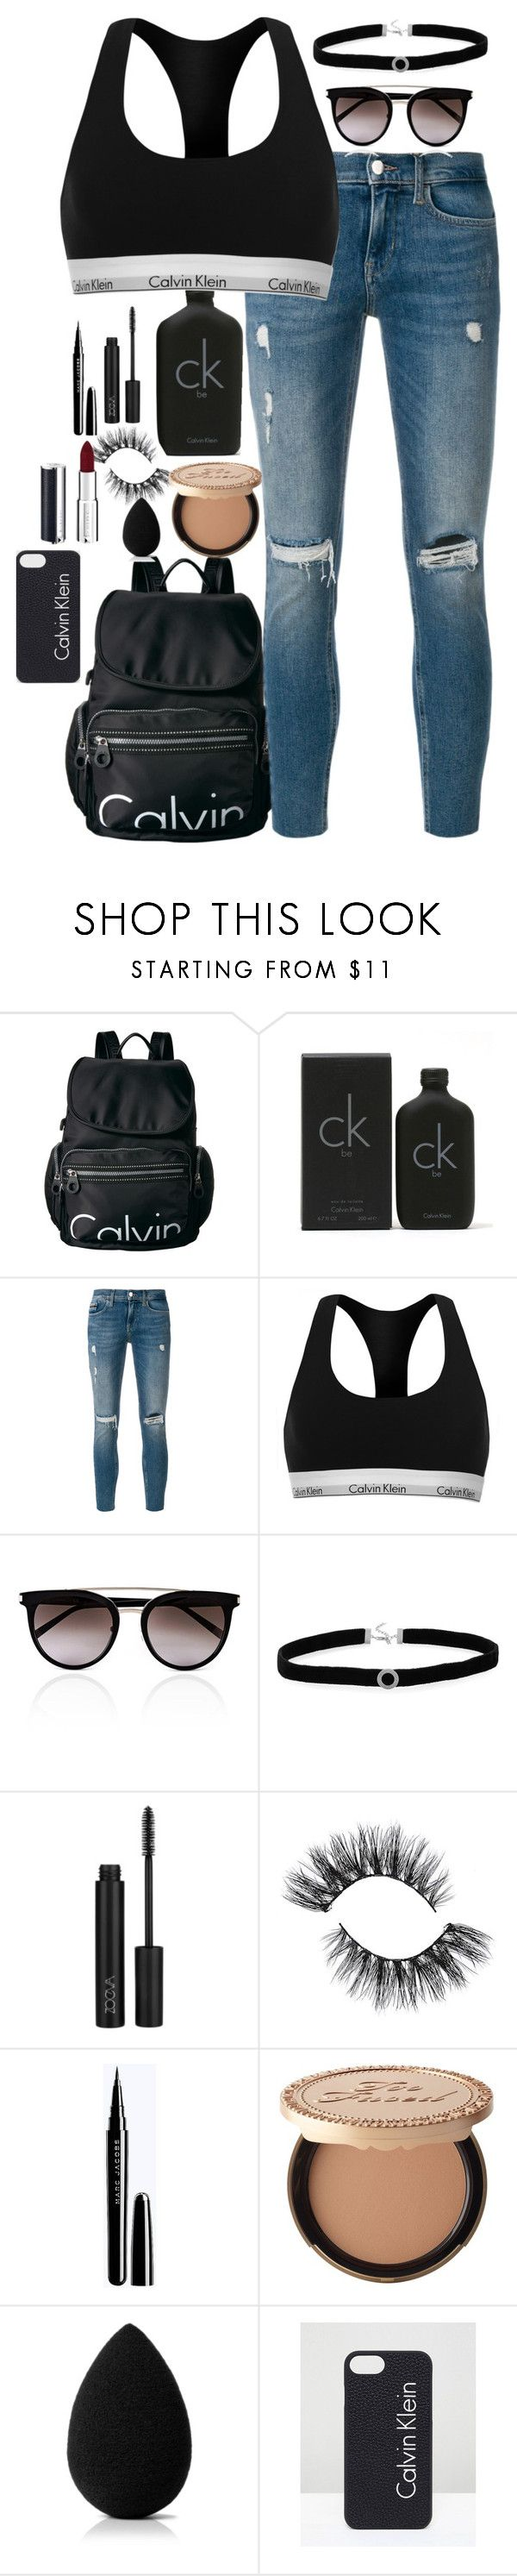 """""""Calvin Klein"""" by carbonchisofia ❤ liked on Polyvore featuring Calvin Klein, BillyTheTree, ZOEVA, Too Faced Cosmetics, beautyblender and Givenchy"""